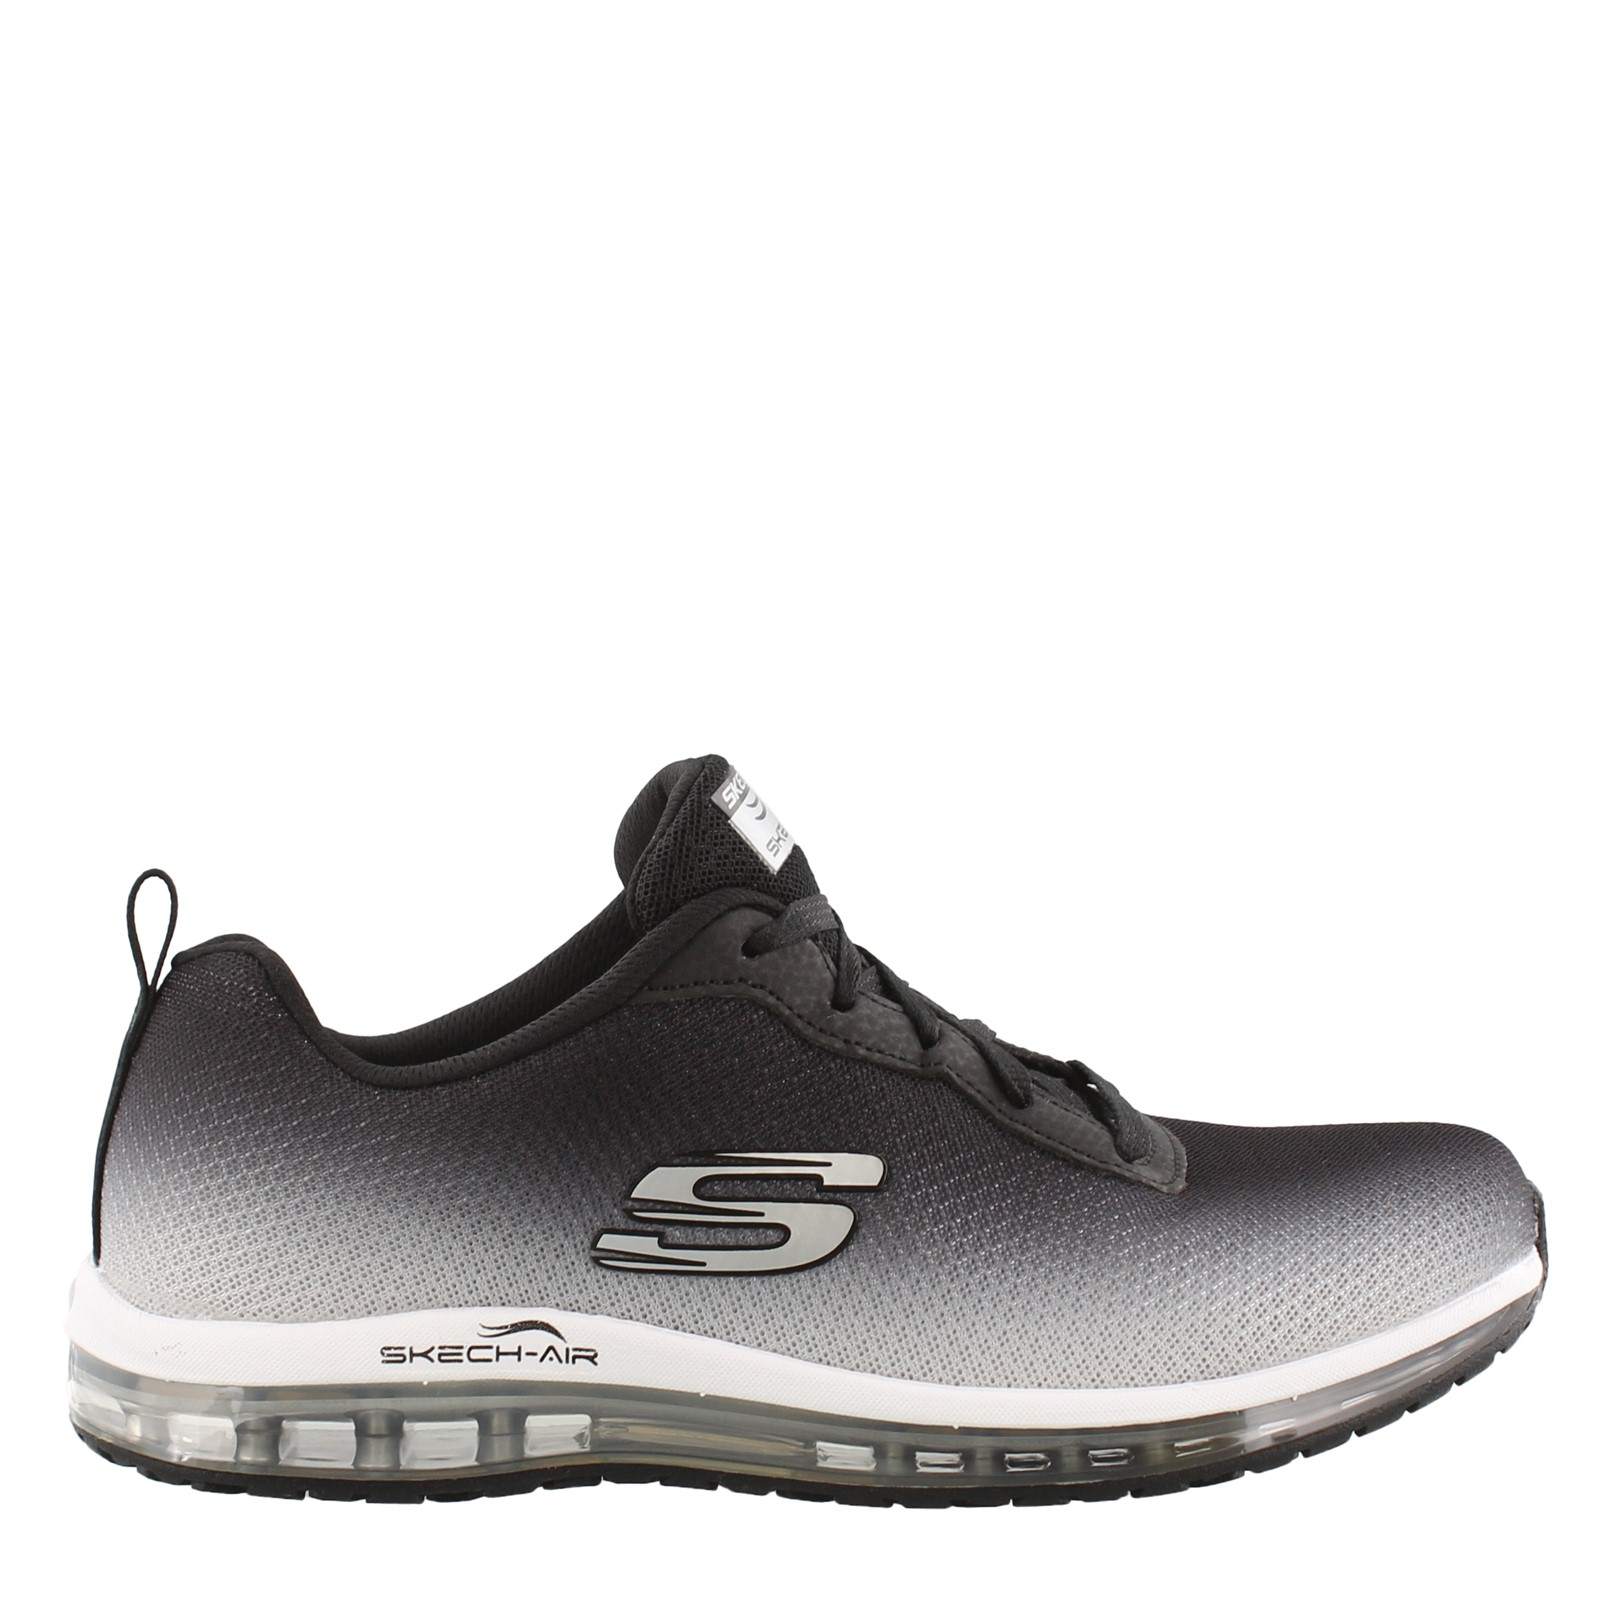 Women's Skechers, Skech-Air Element